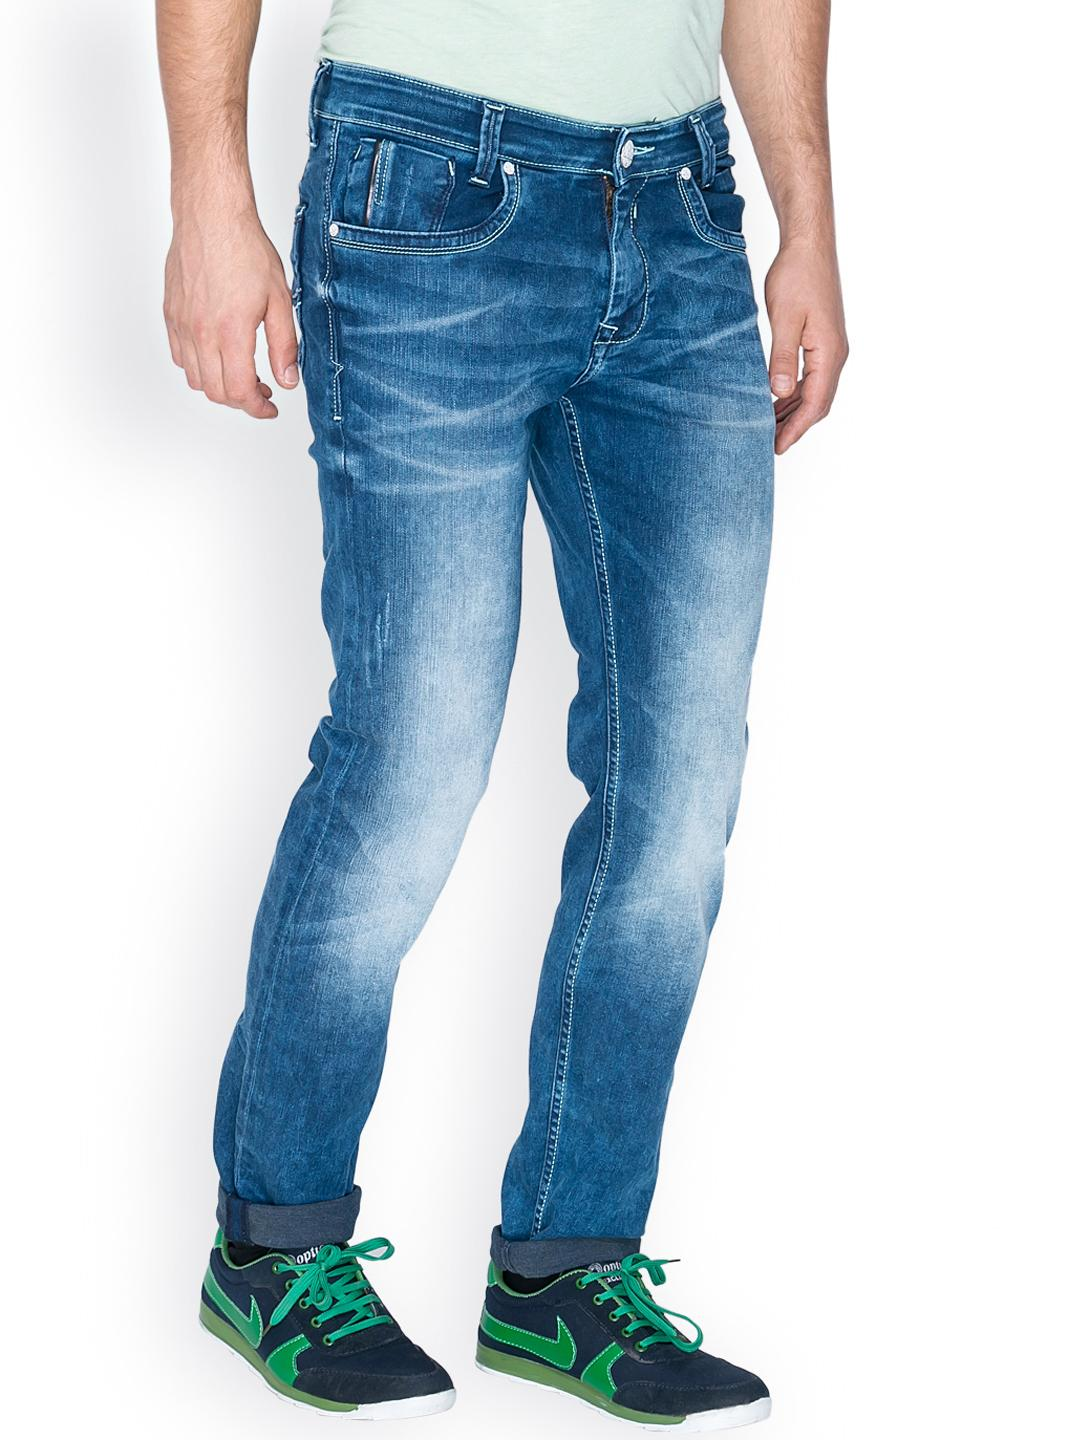 Myntra Mufti Men Blue Regular Fit Jeans 800725 | Buy Myntra Mufti Jeans at best price online ...